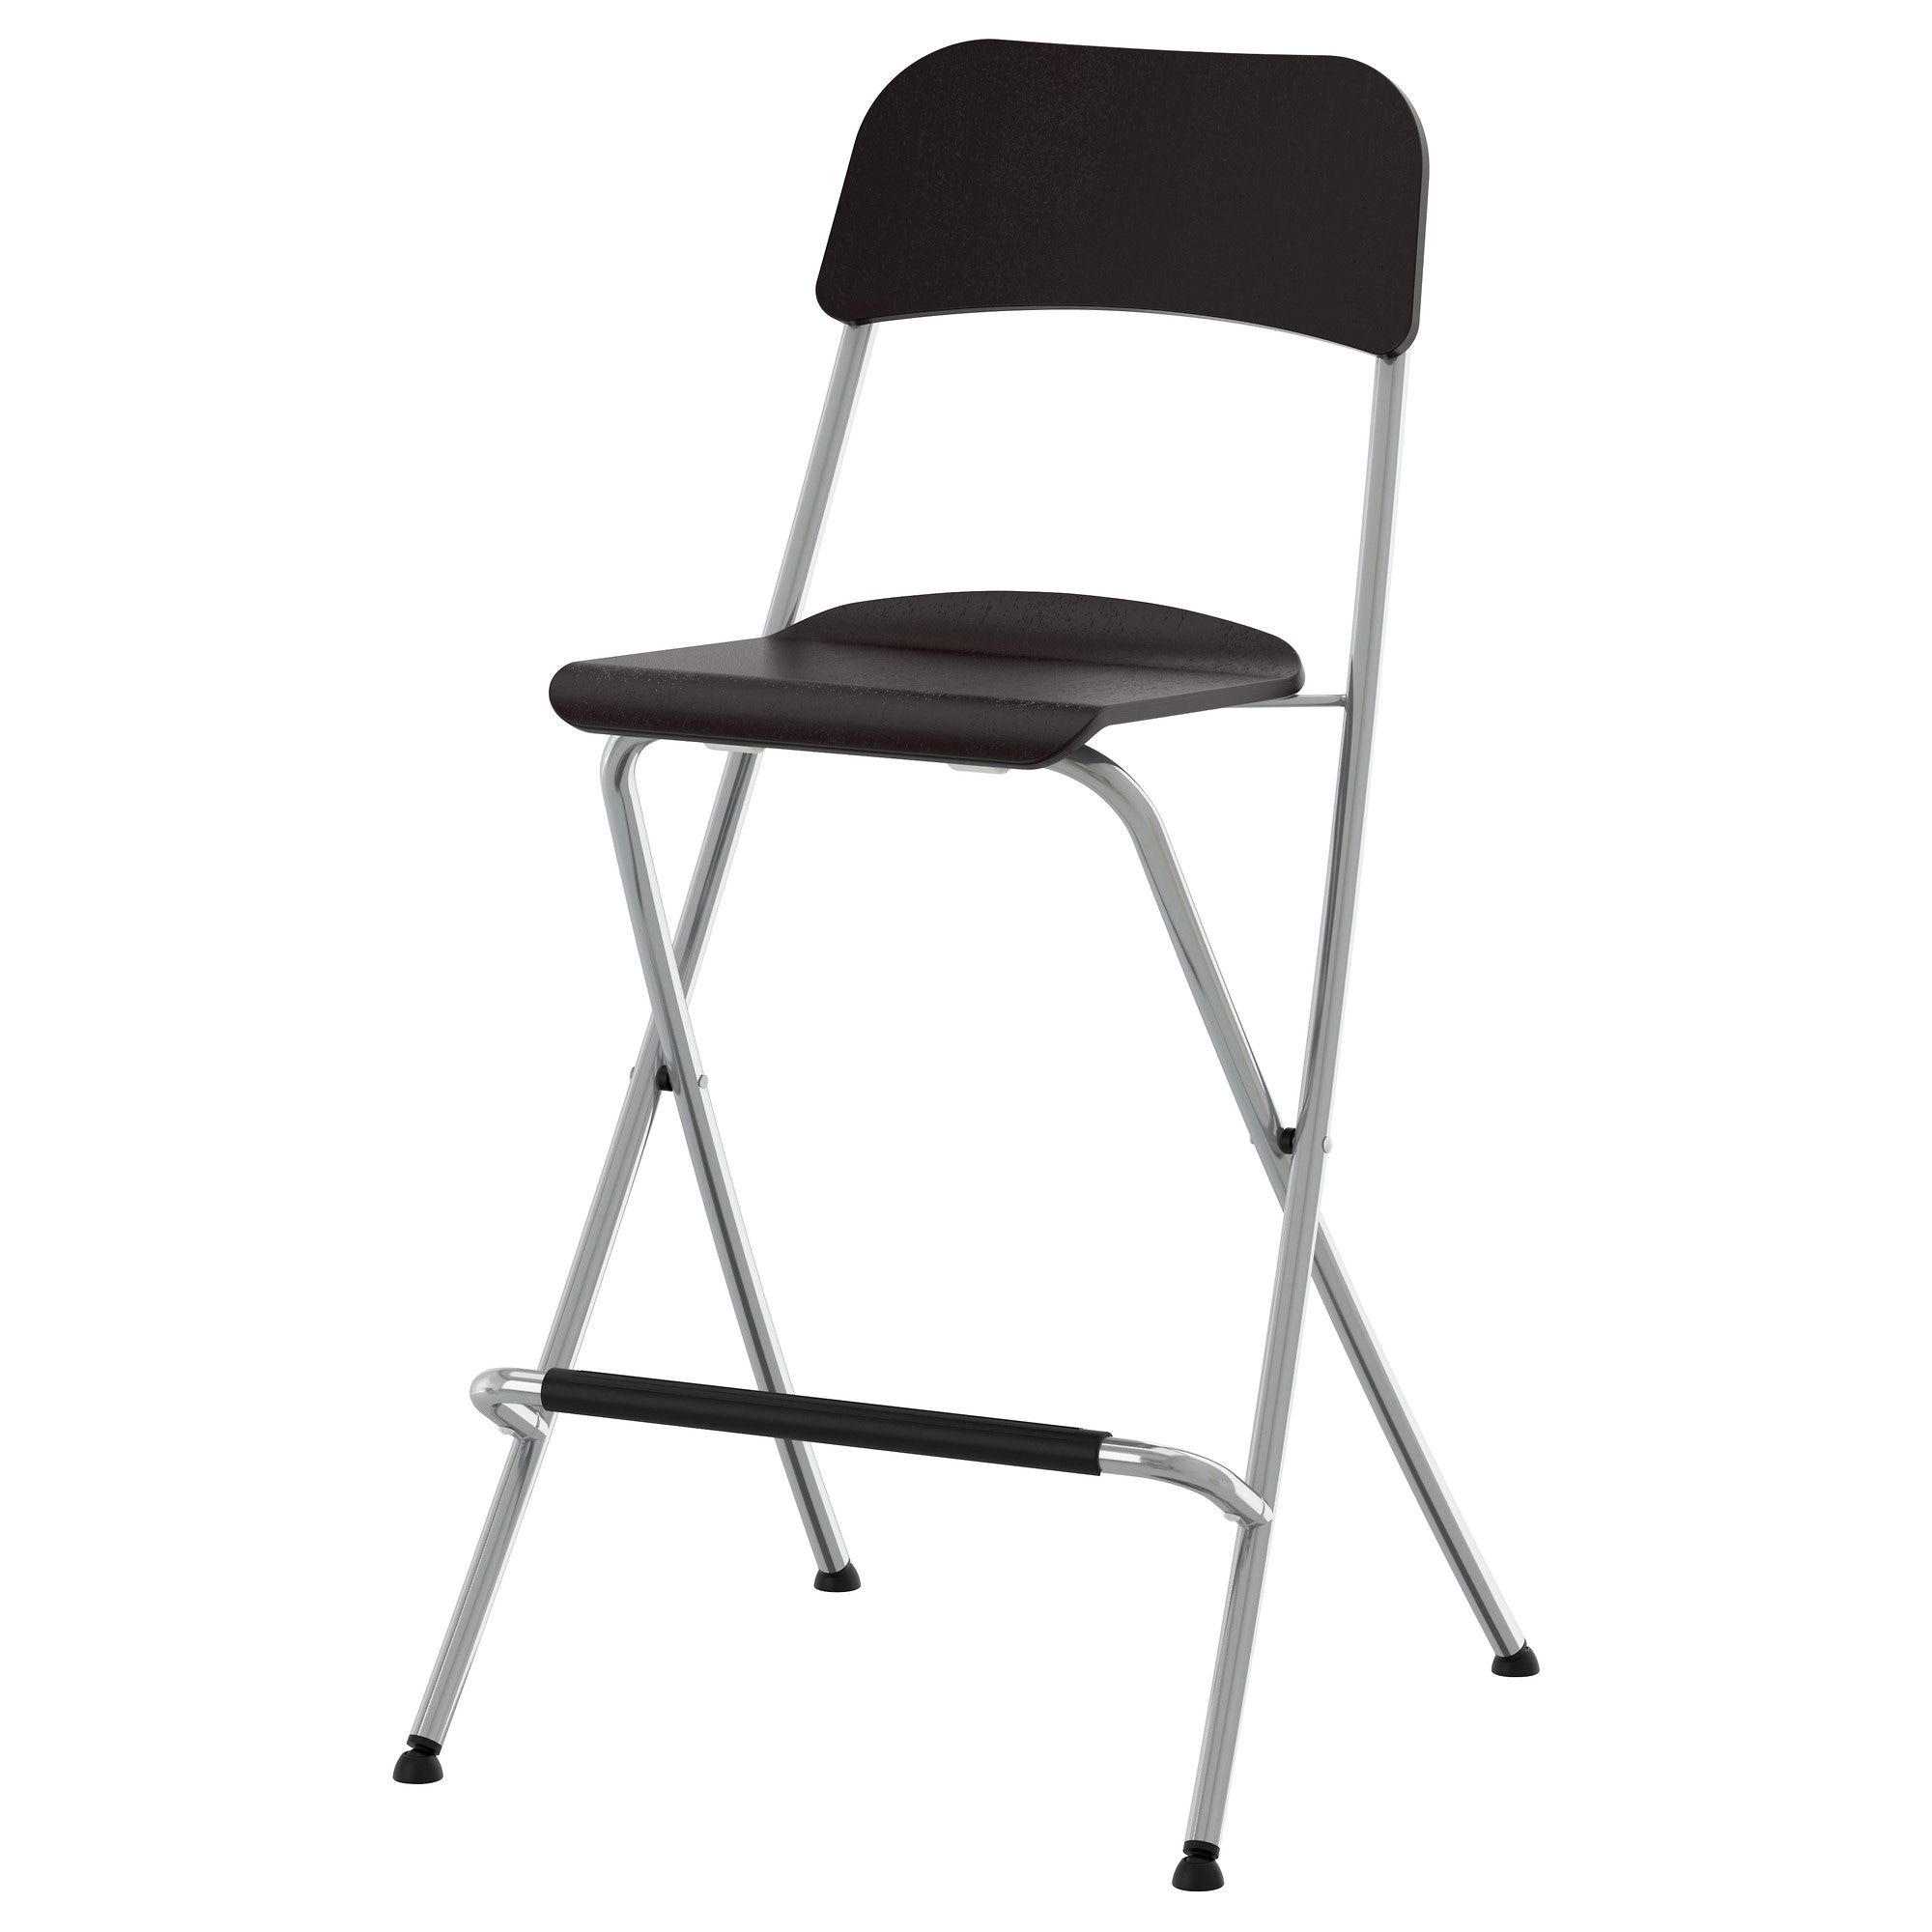 sc 1 st  Ikea & FRANKLIN Bar stool with backrest foldable - 24 3/4